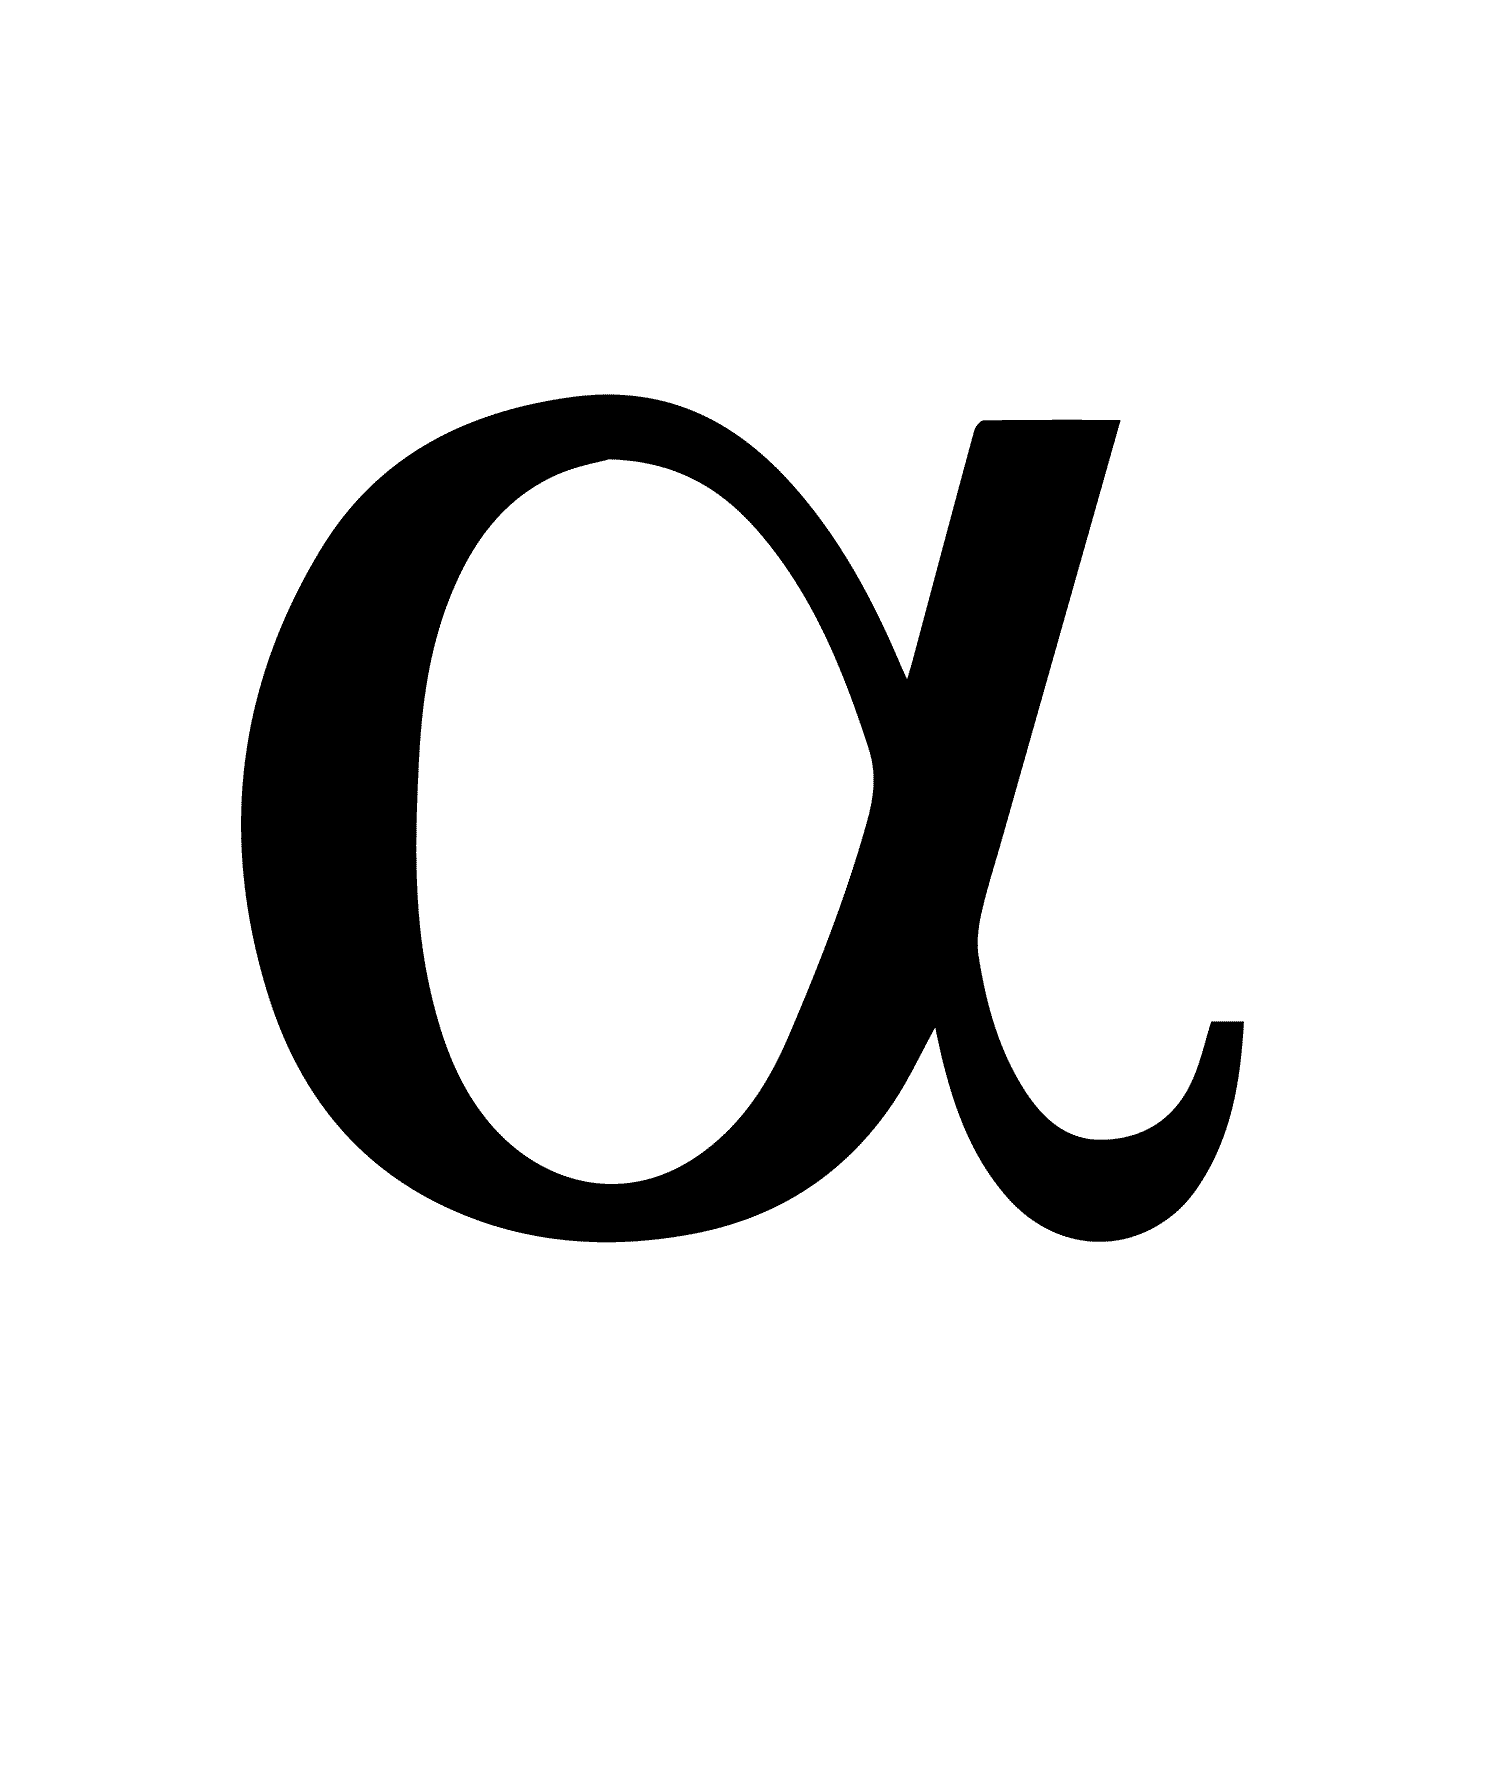 Alpha-Symbol-Meaning-Alpha-and-Omega Omega Symbol Meaning In Math on